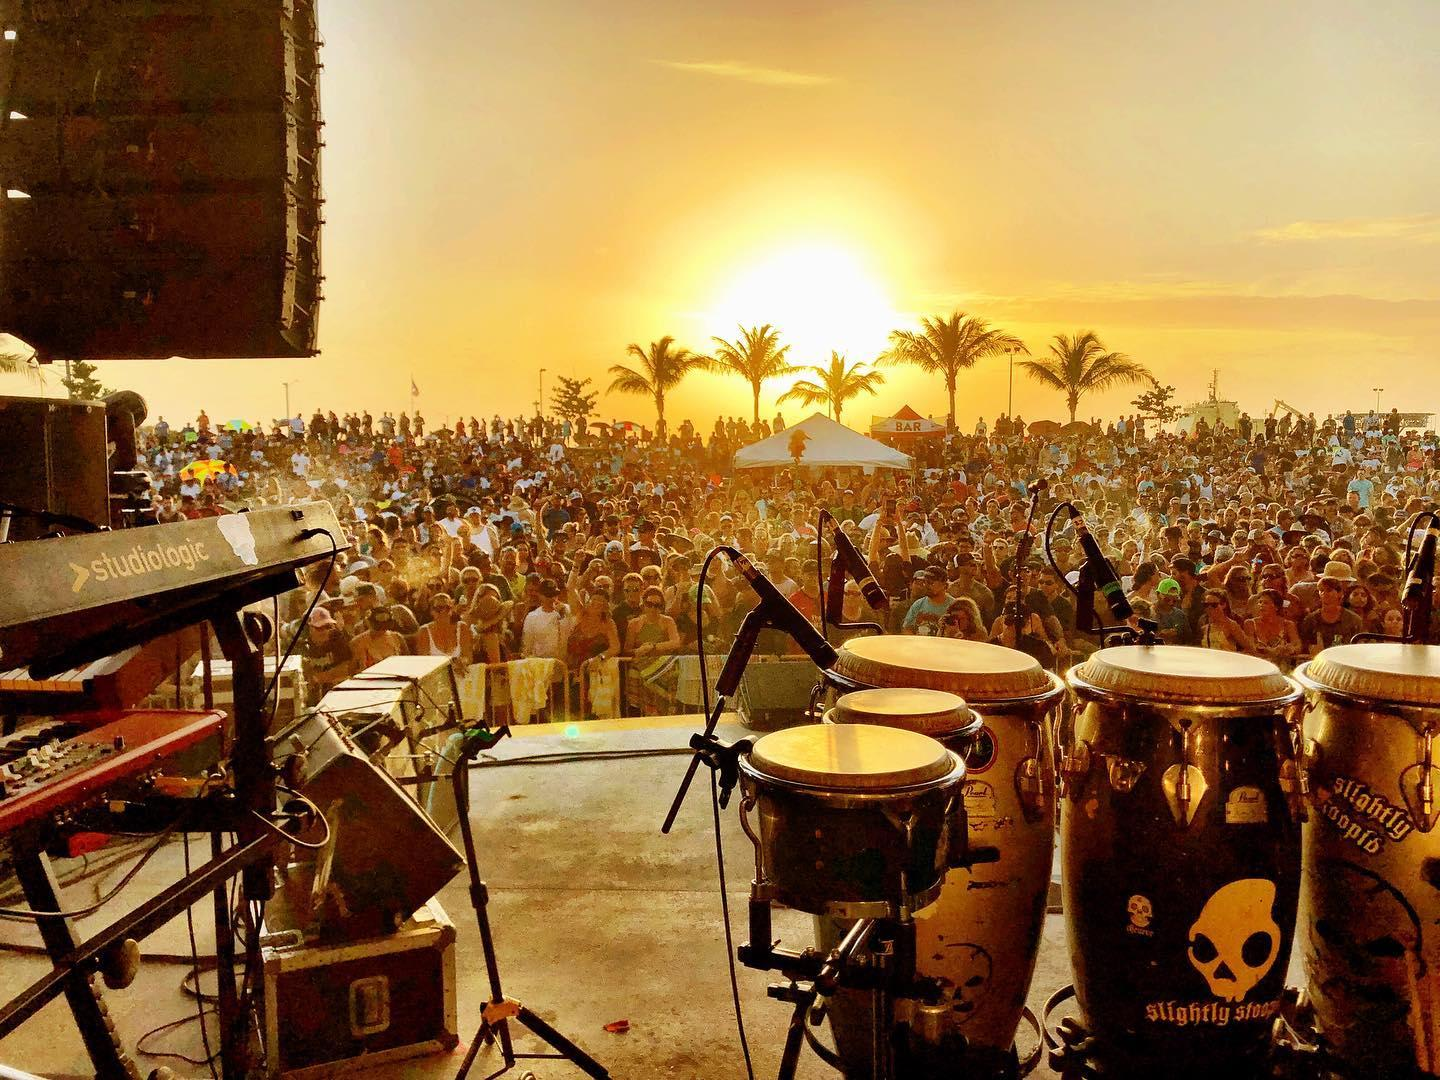 Key West Concert and Music Festival Scene